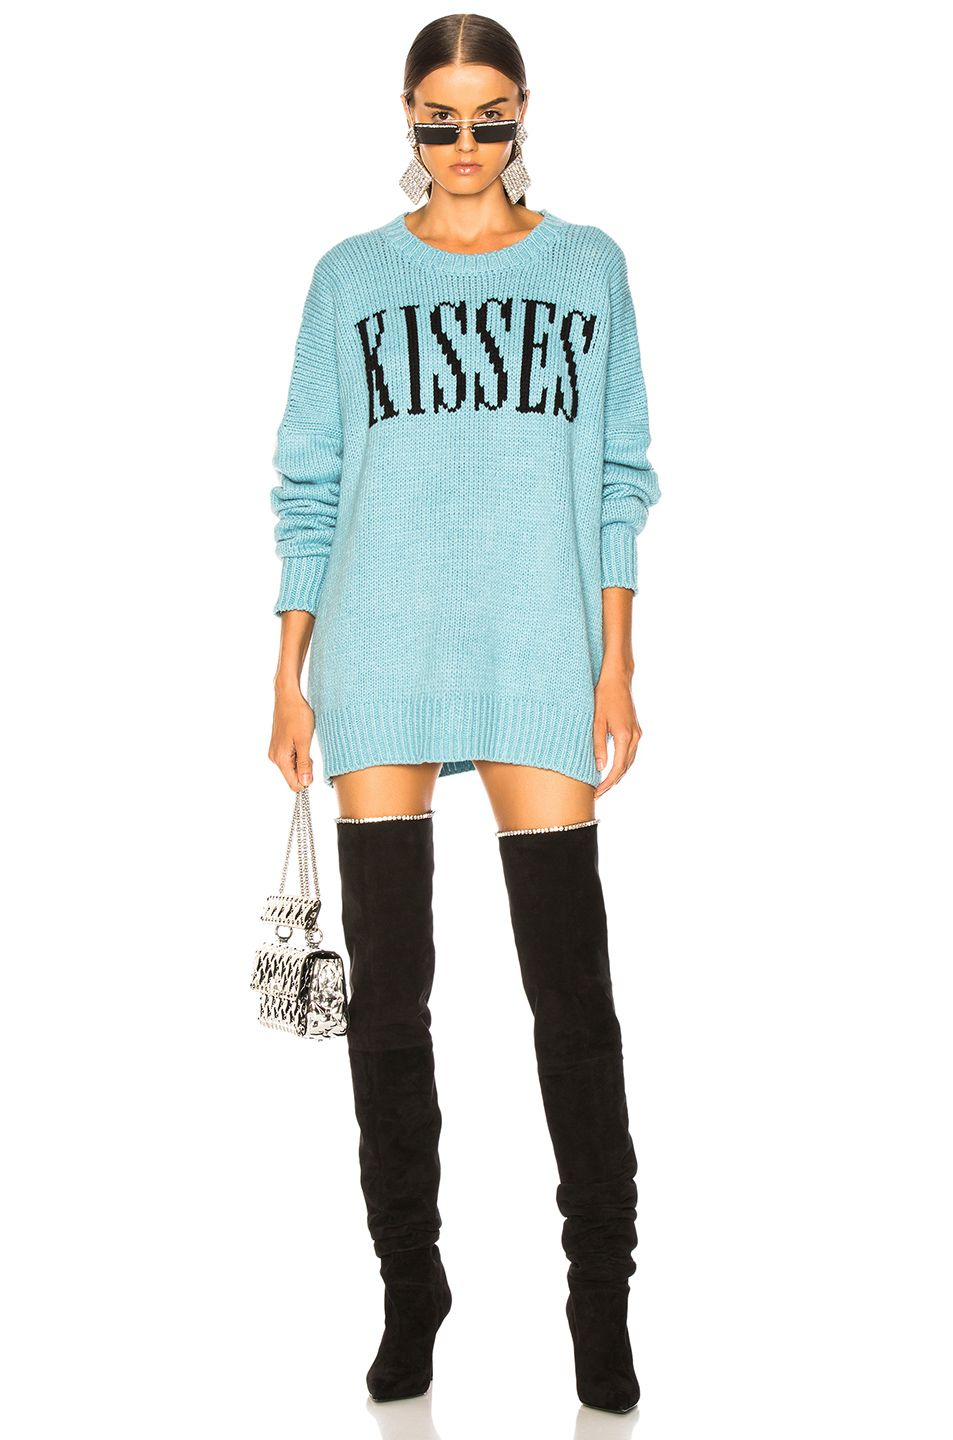 8f4cf8d0a6 Image 1 of Amiri Kisses Oversized Sweater in Light Blue   Black ...